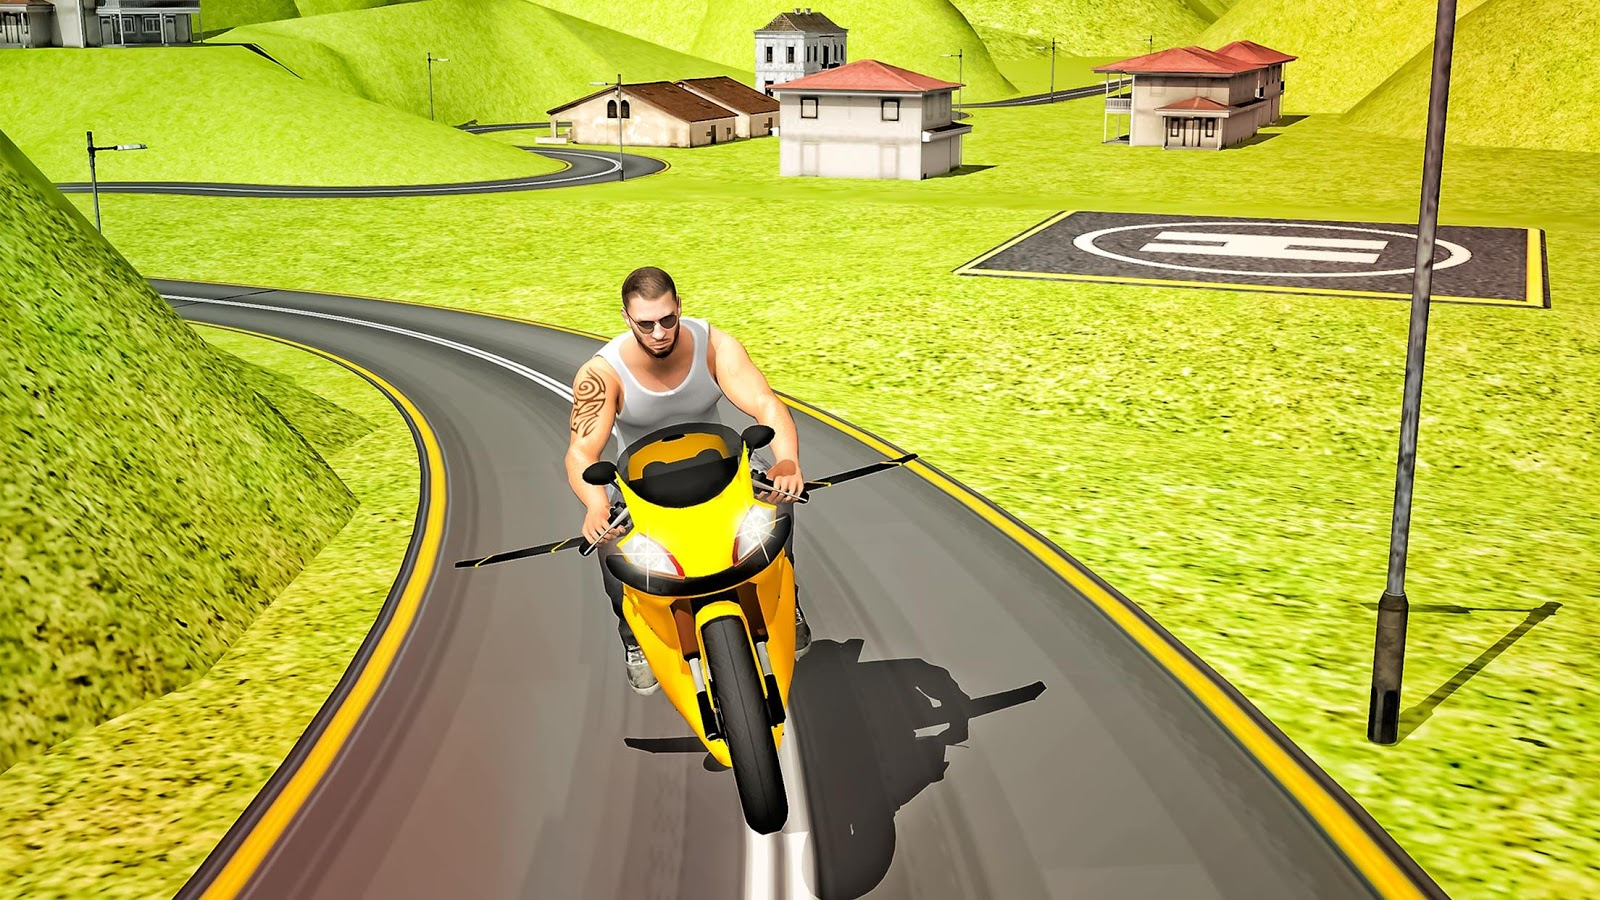 Description flying moto racer 3d racing moto is a fast paced racing